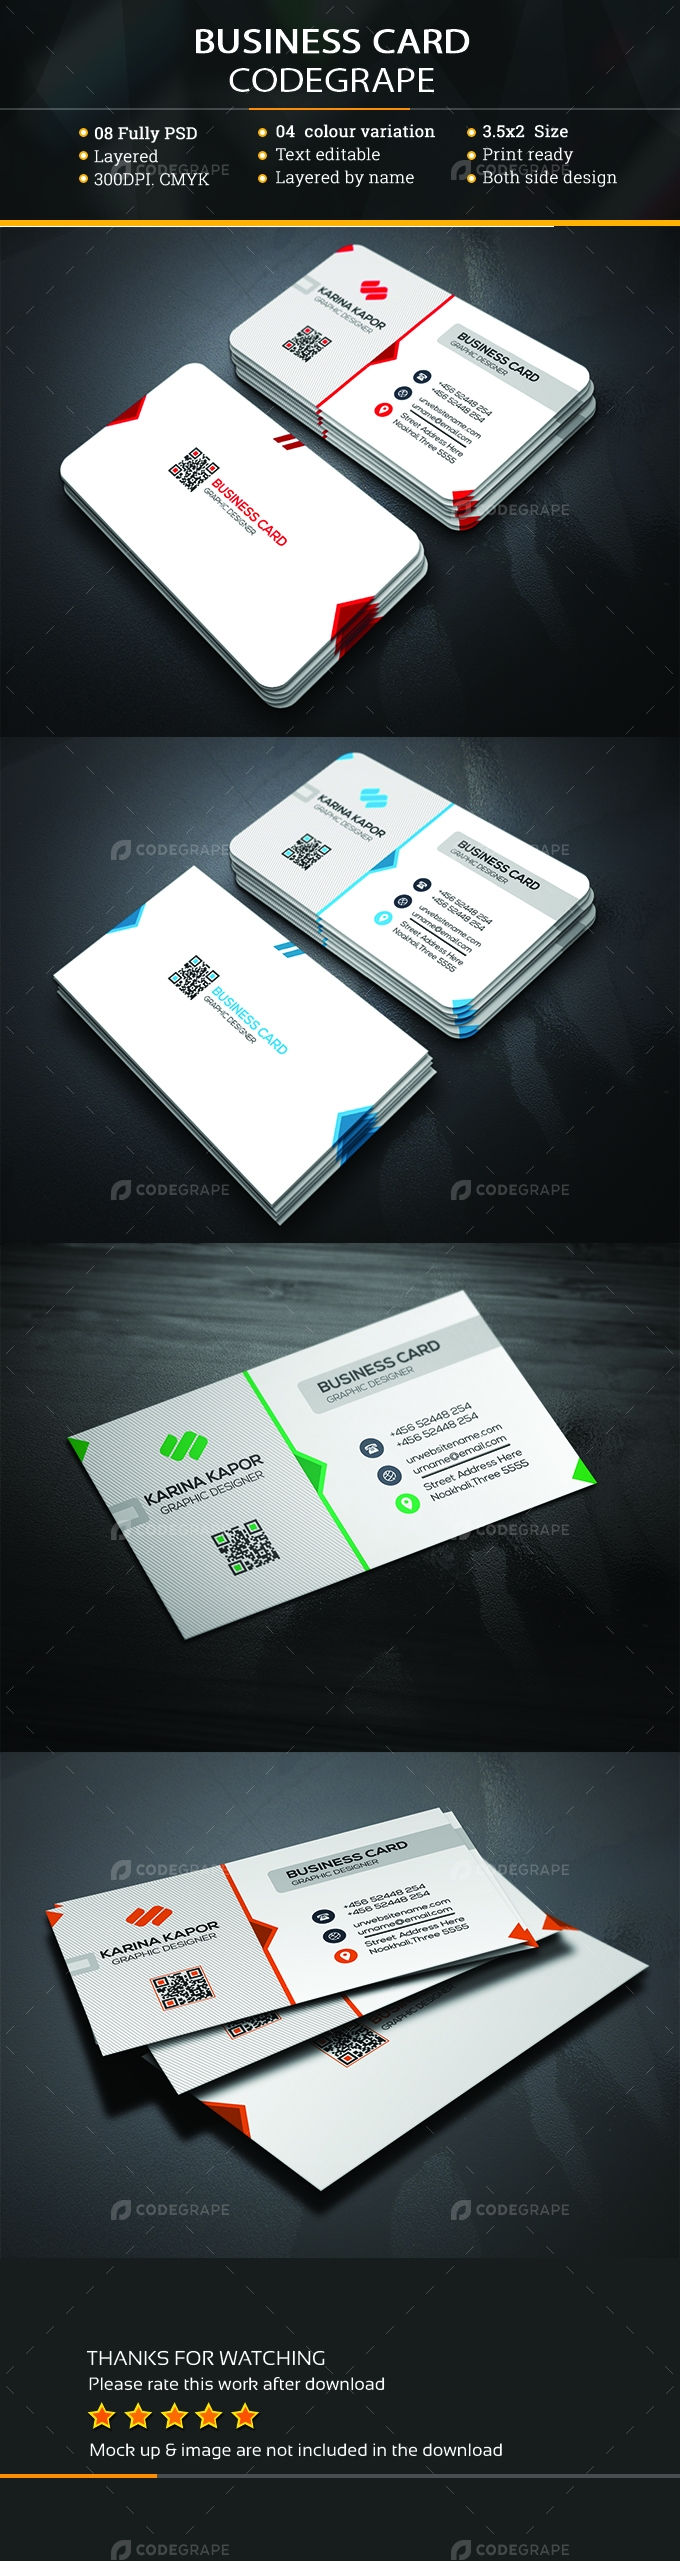 Easy Business Card